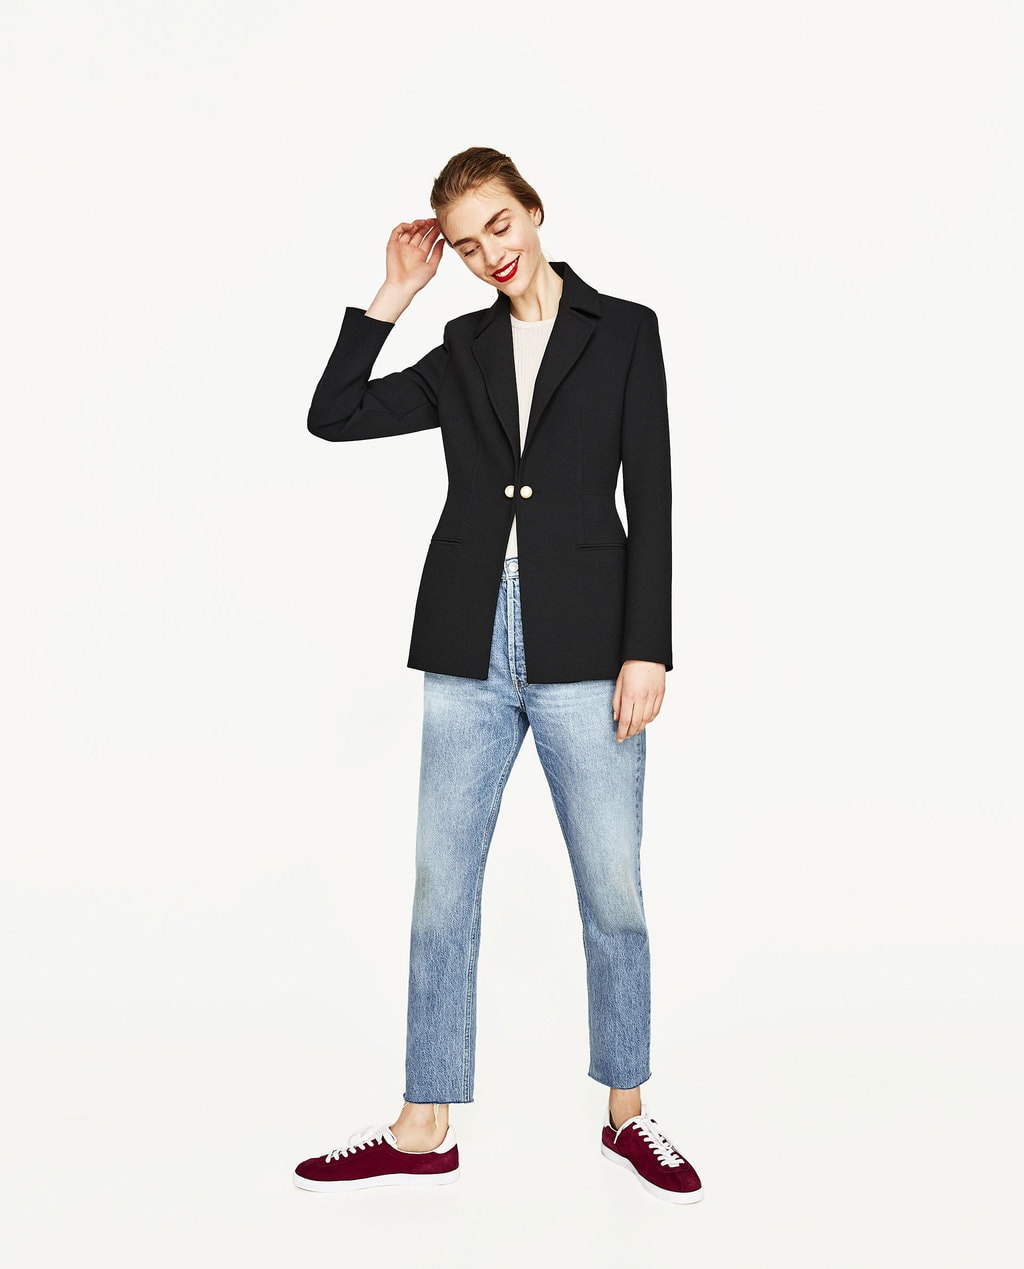 Zara black blazer with pearl closure, worn with white t-shirt, light-wash jeans, and red sneakers